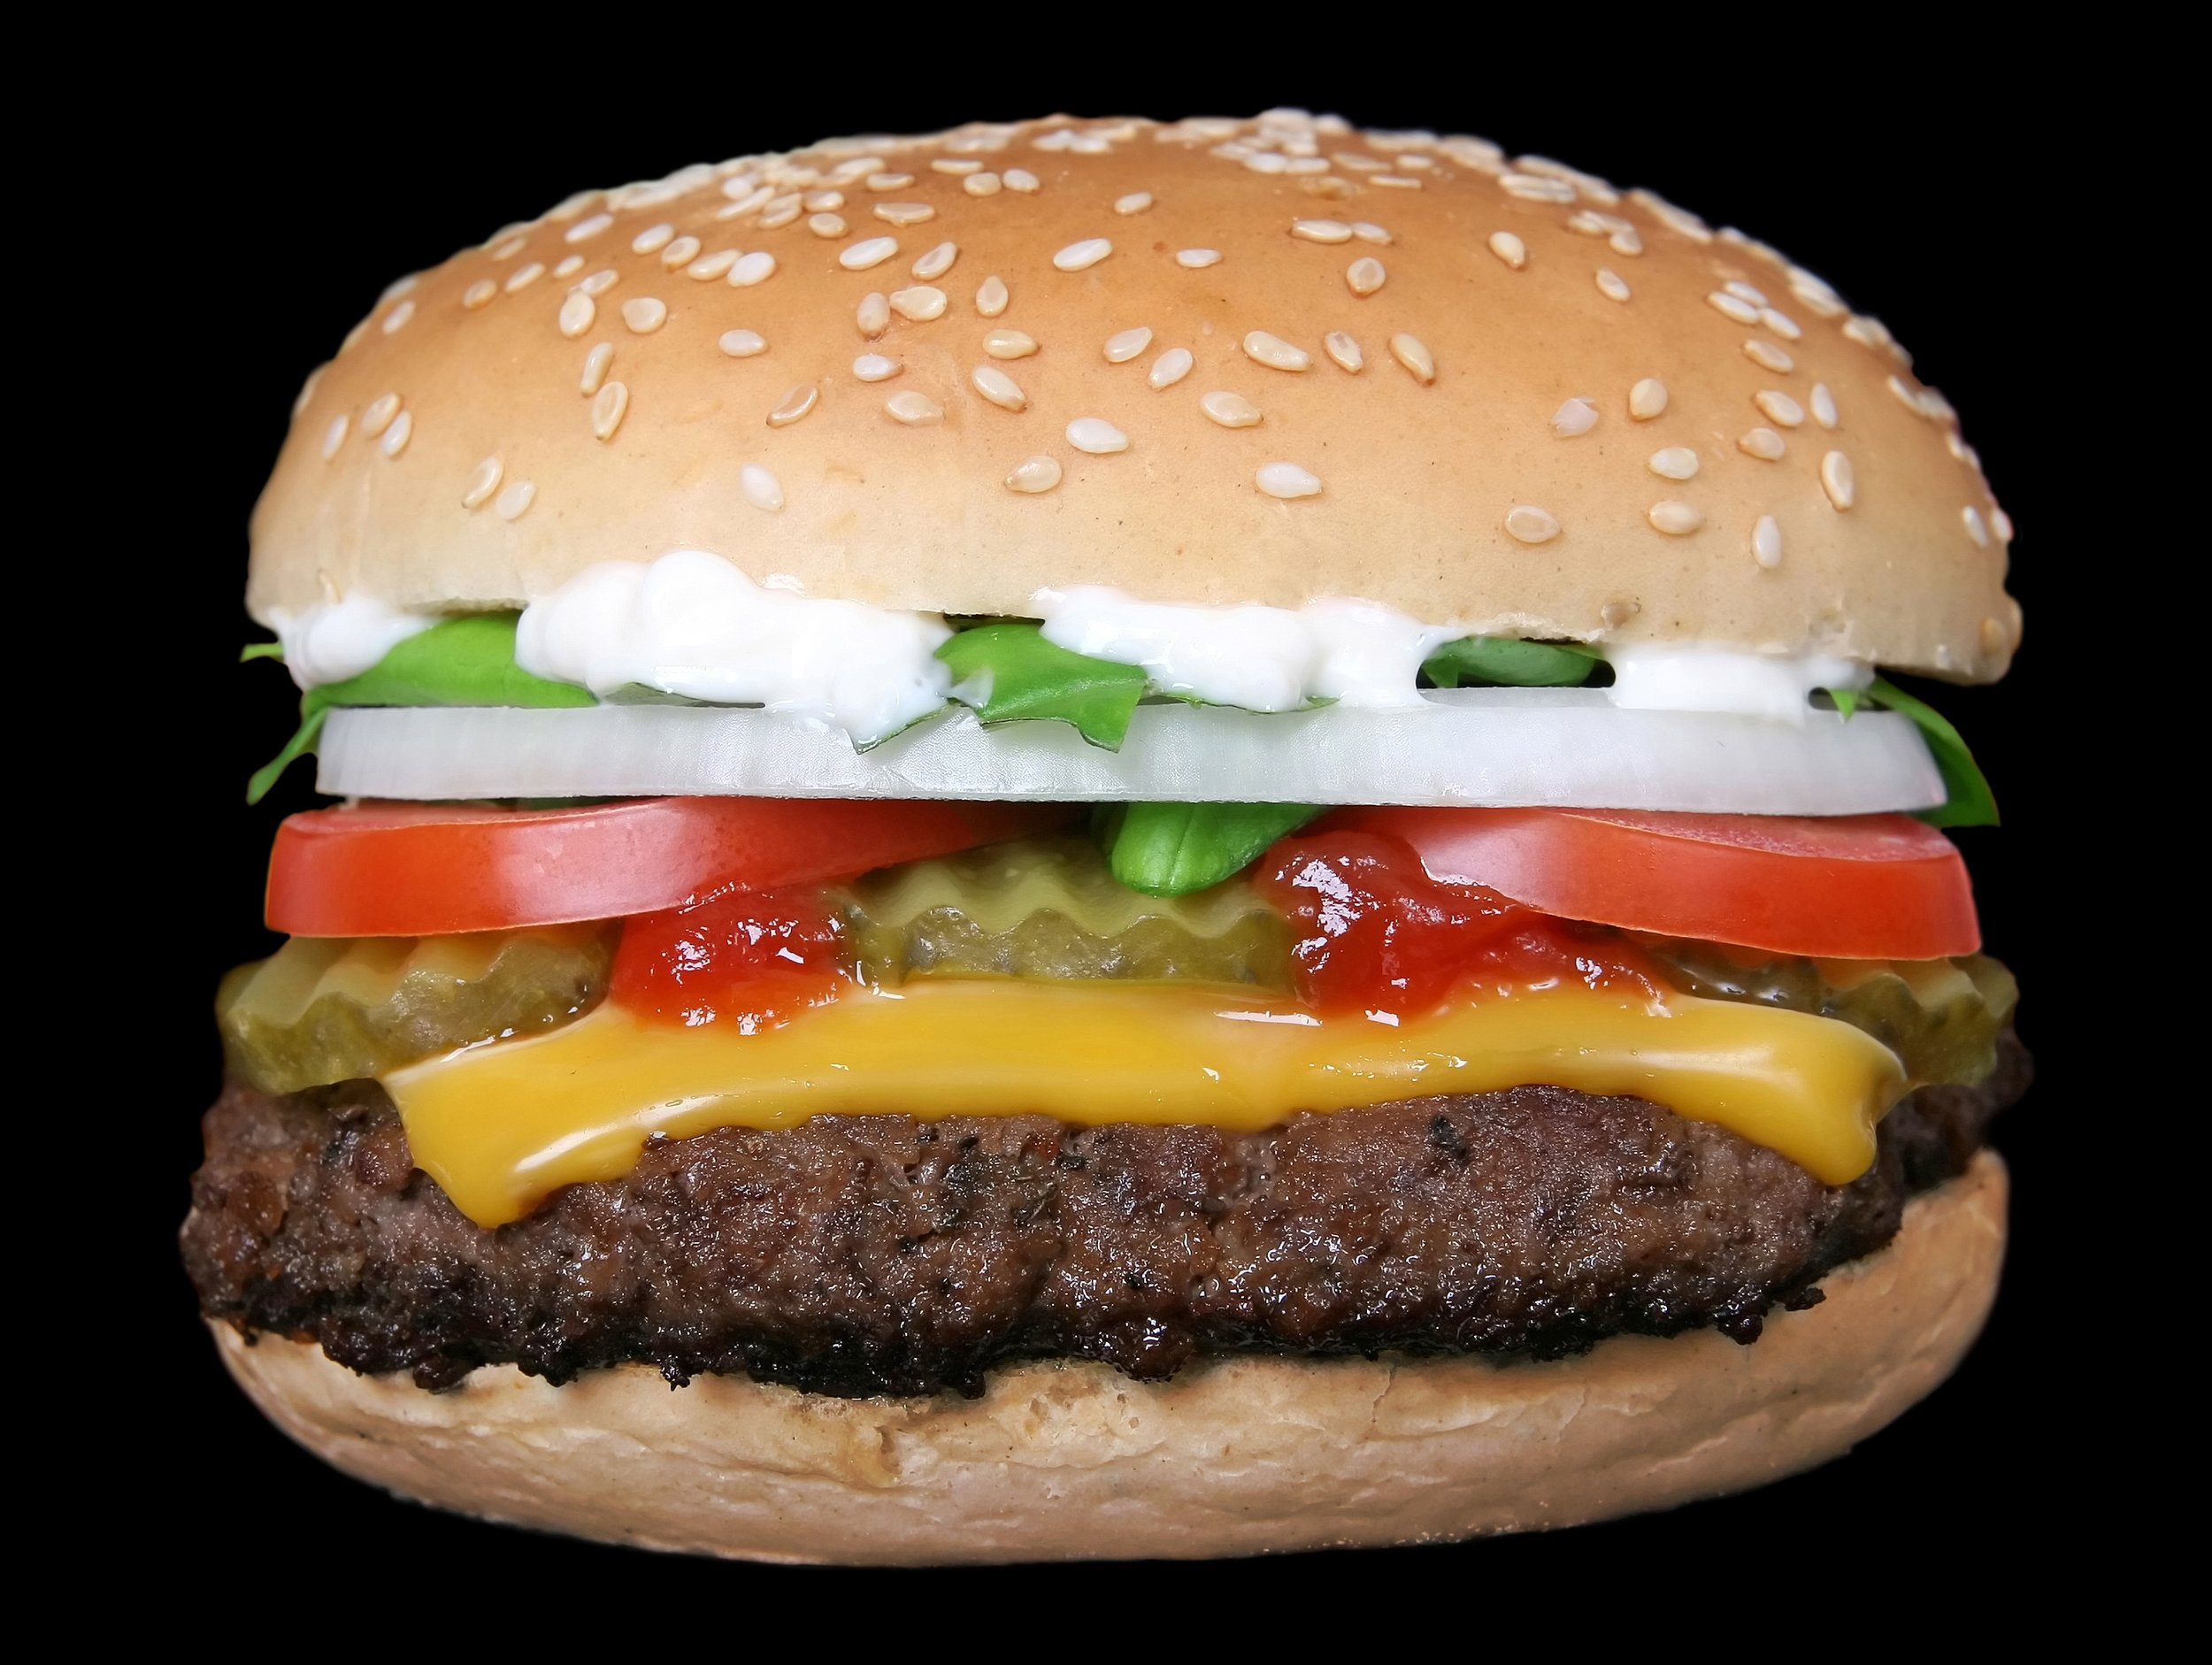 This is not a Dick's cheeseburger. It's a stock photo of a cheeseburger.